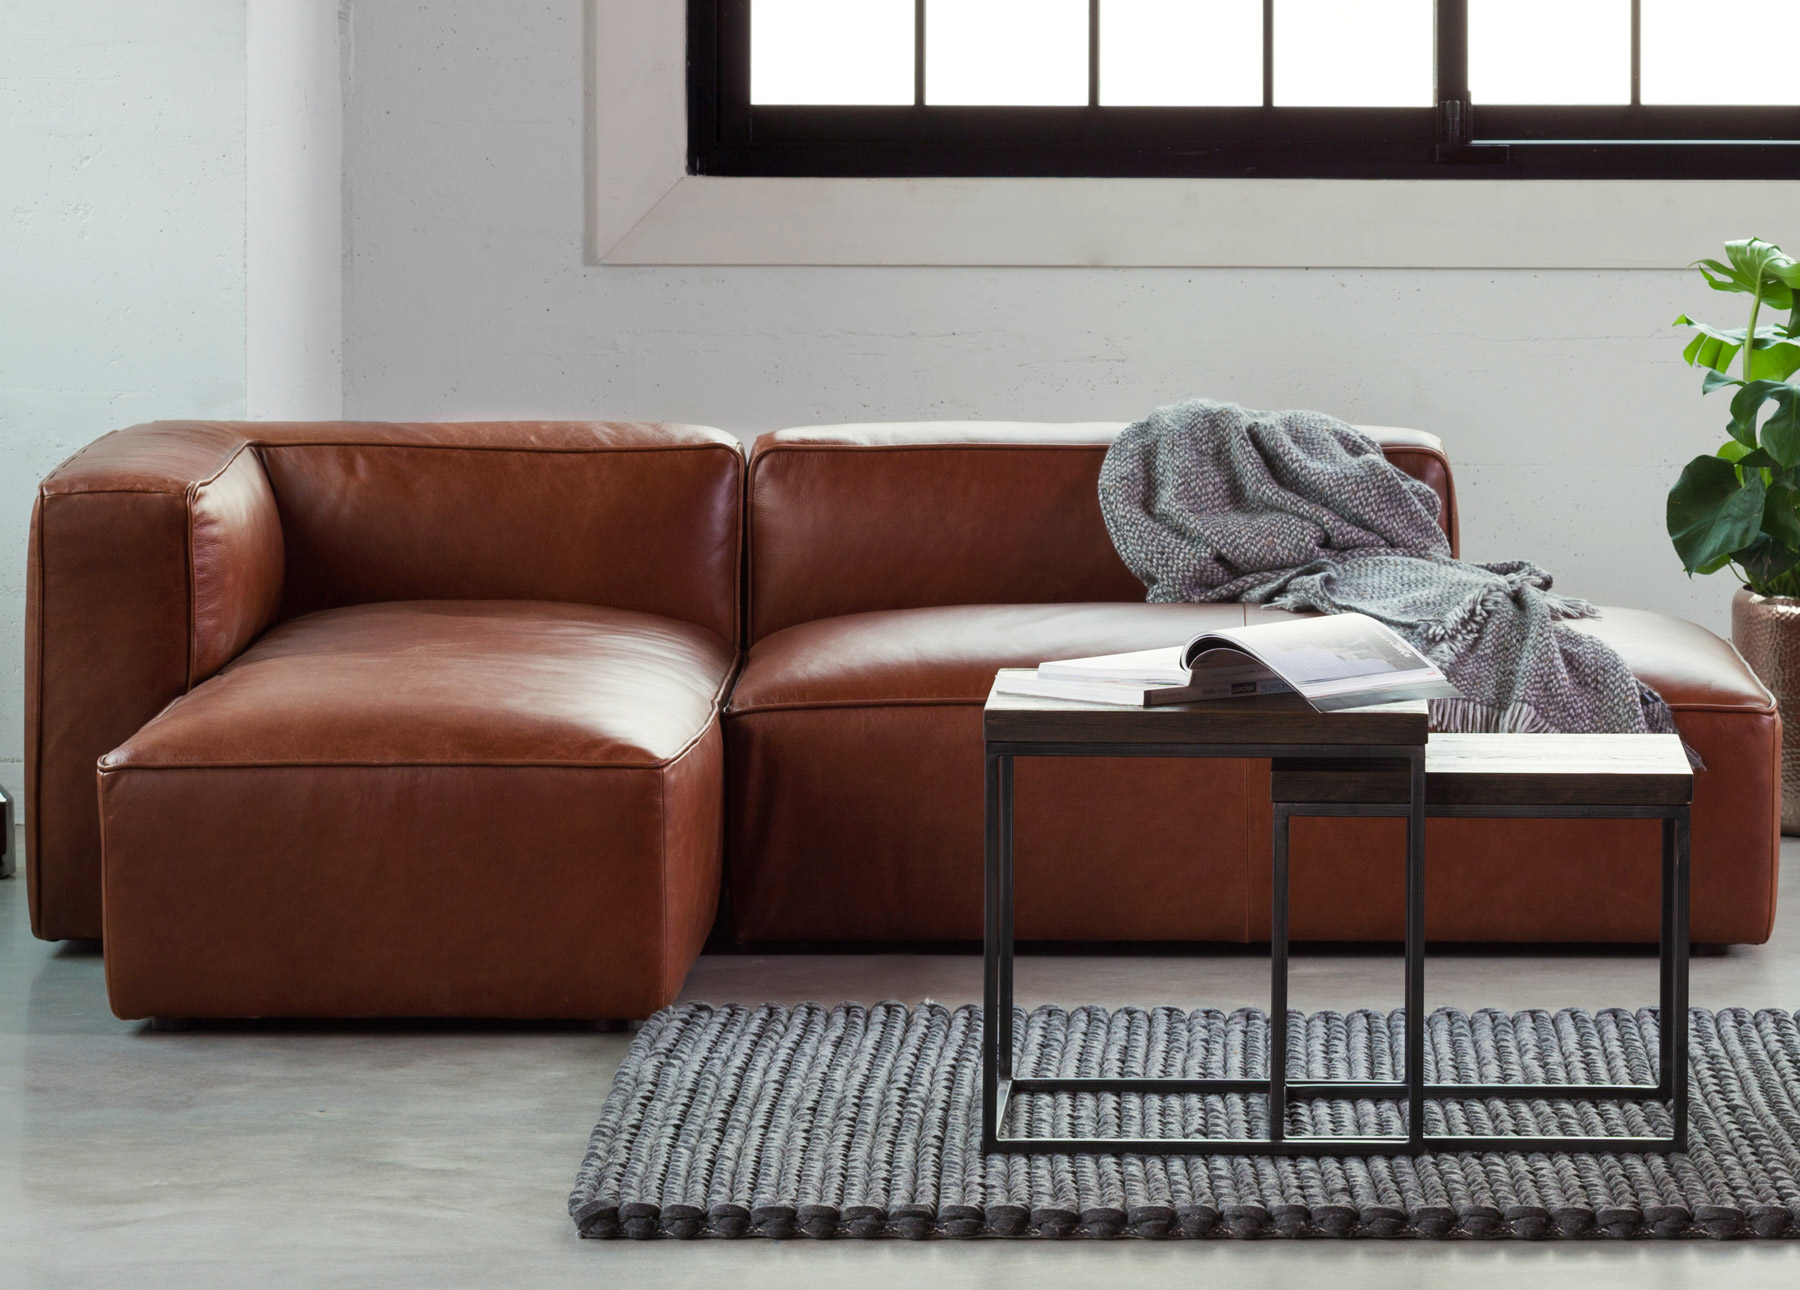 Mello Taos Brown left sectional sofa with coffee tables and rug